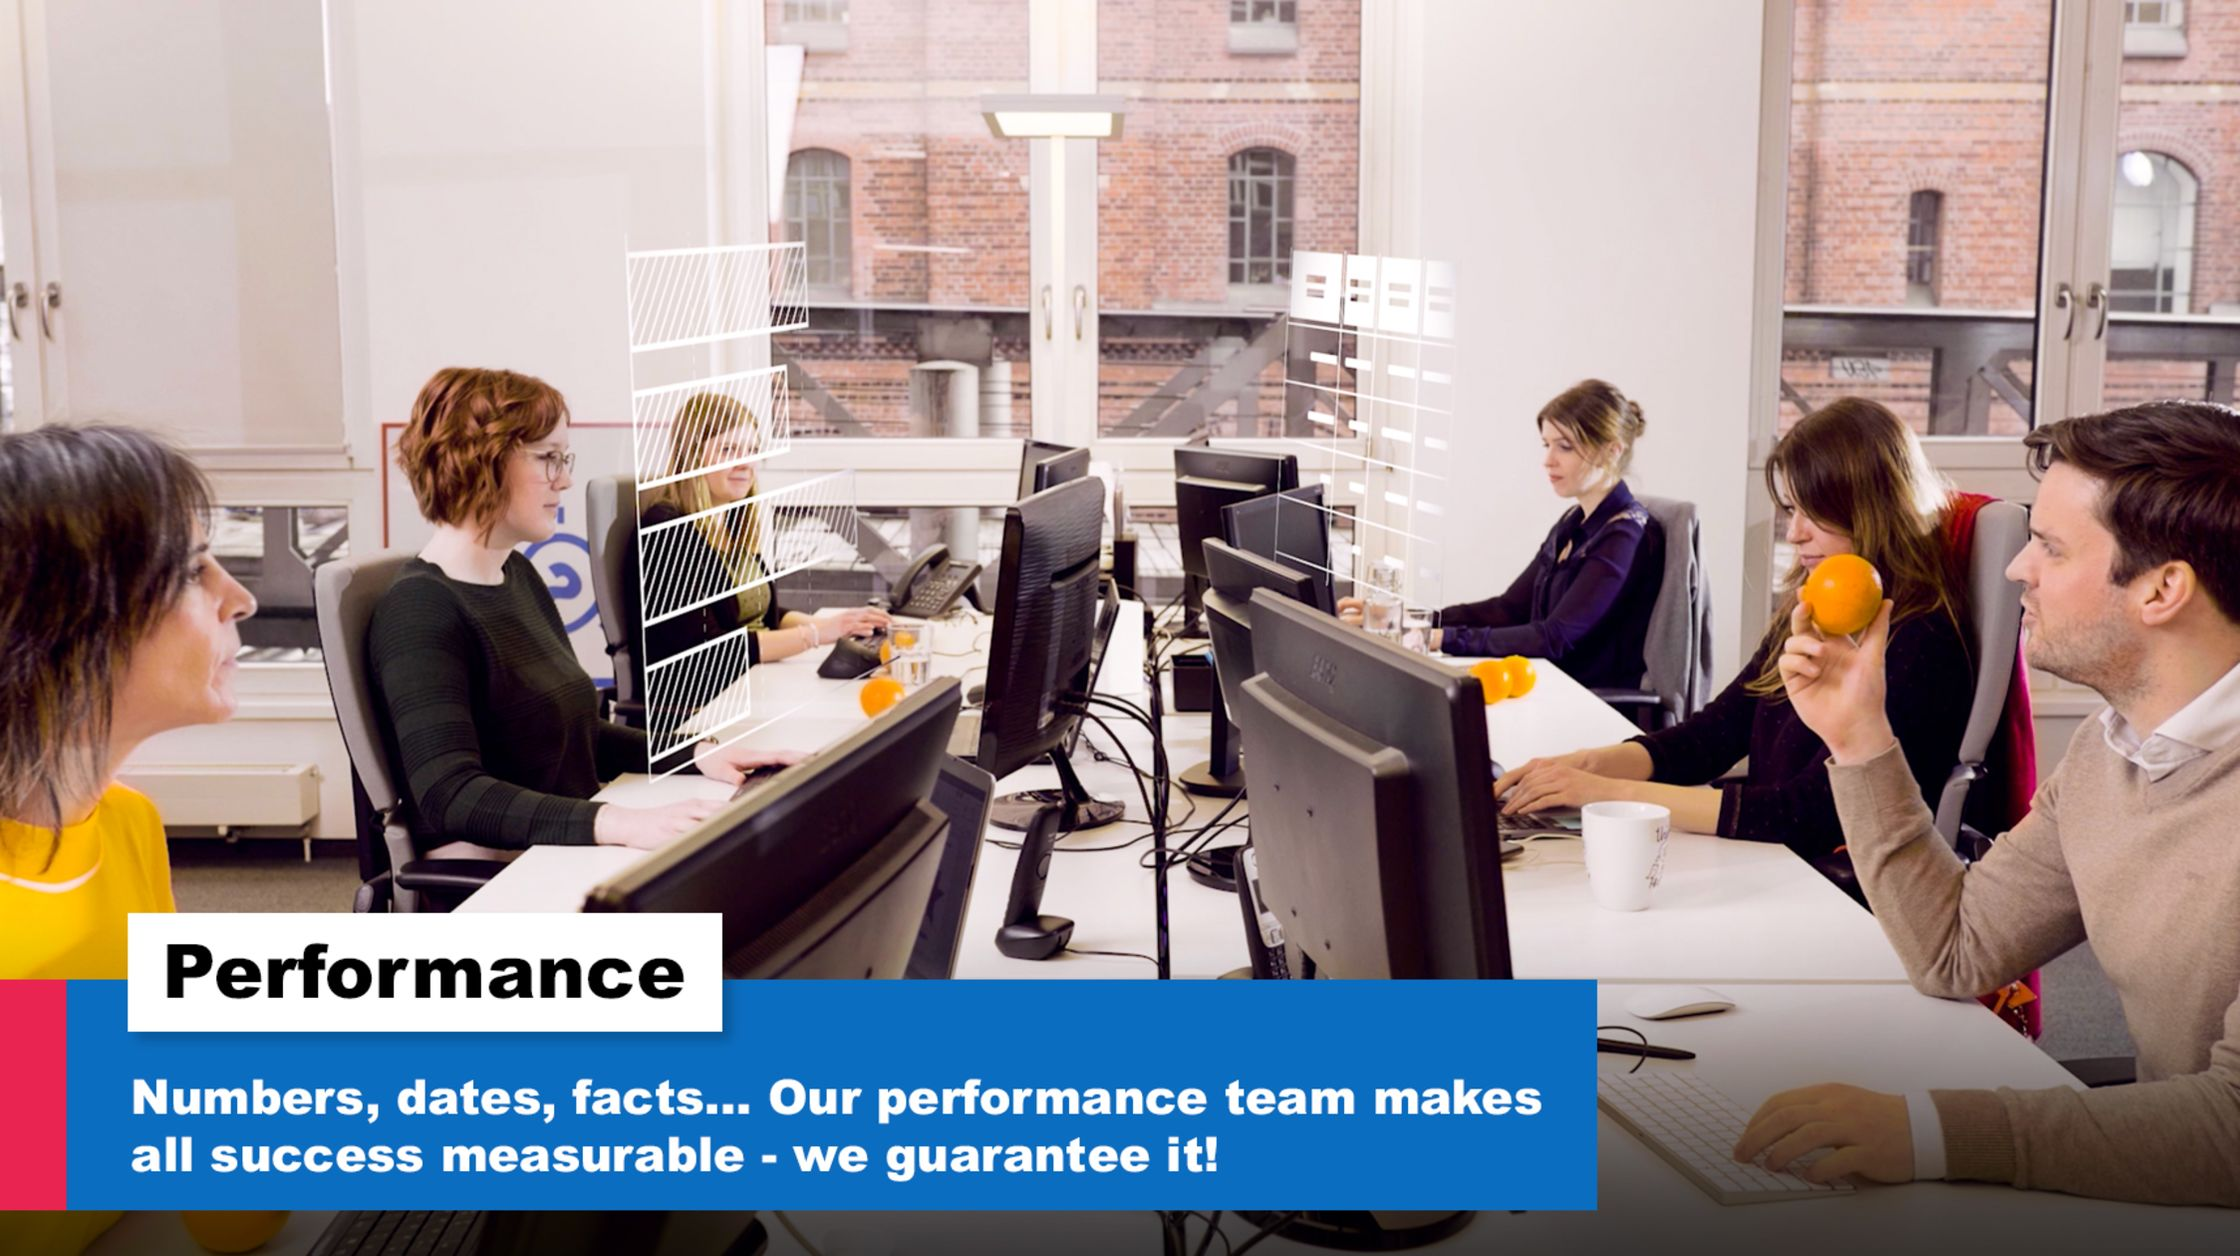 Performance. Our team makes success measurable.